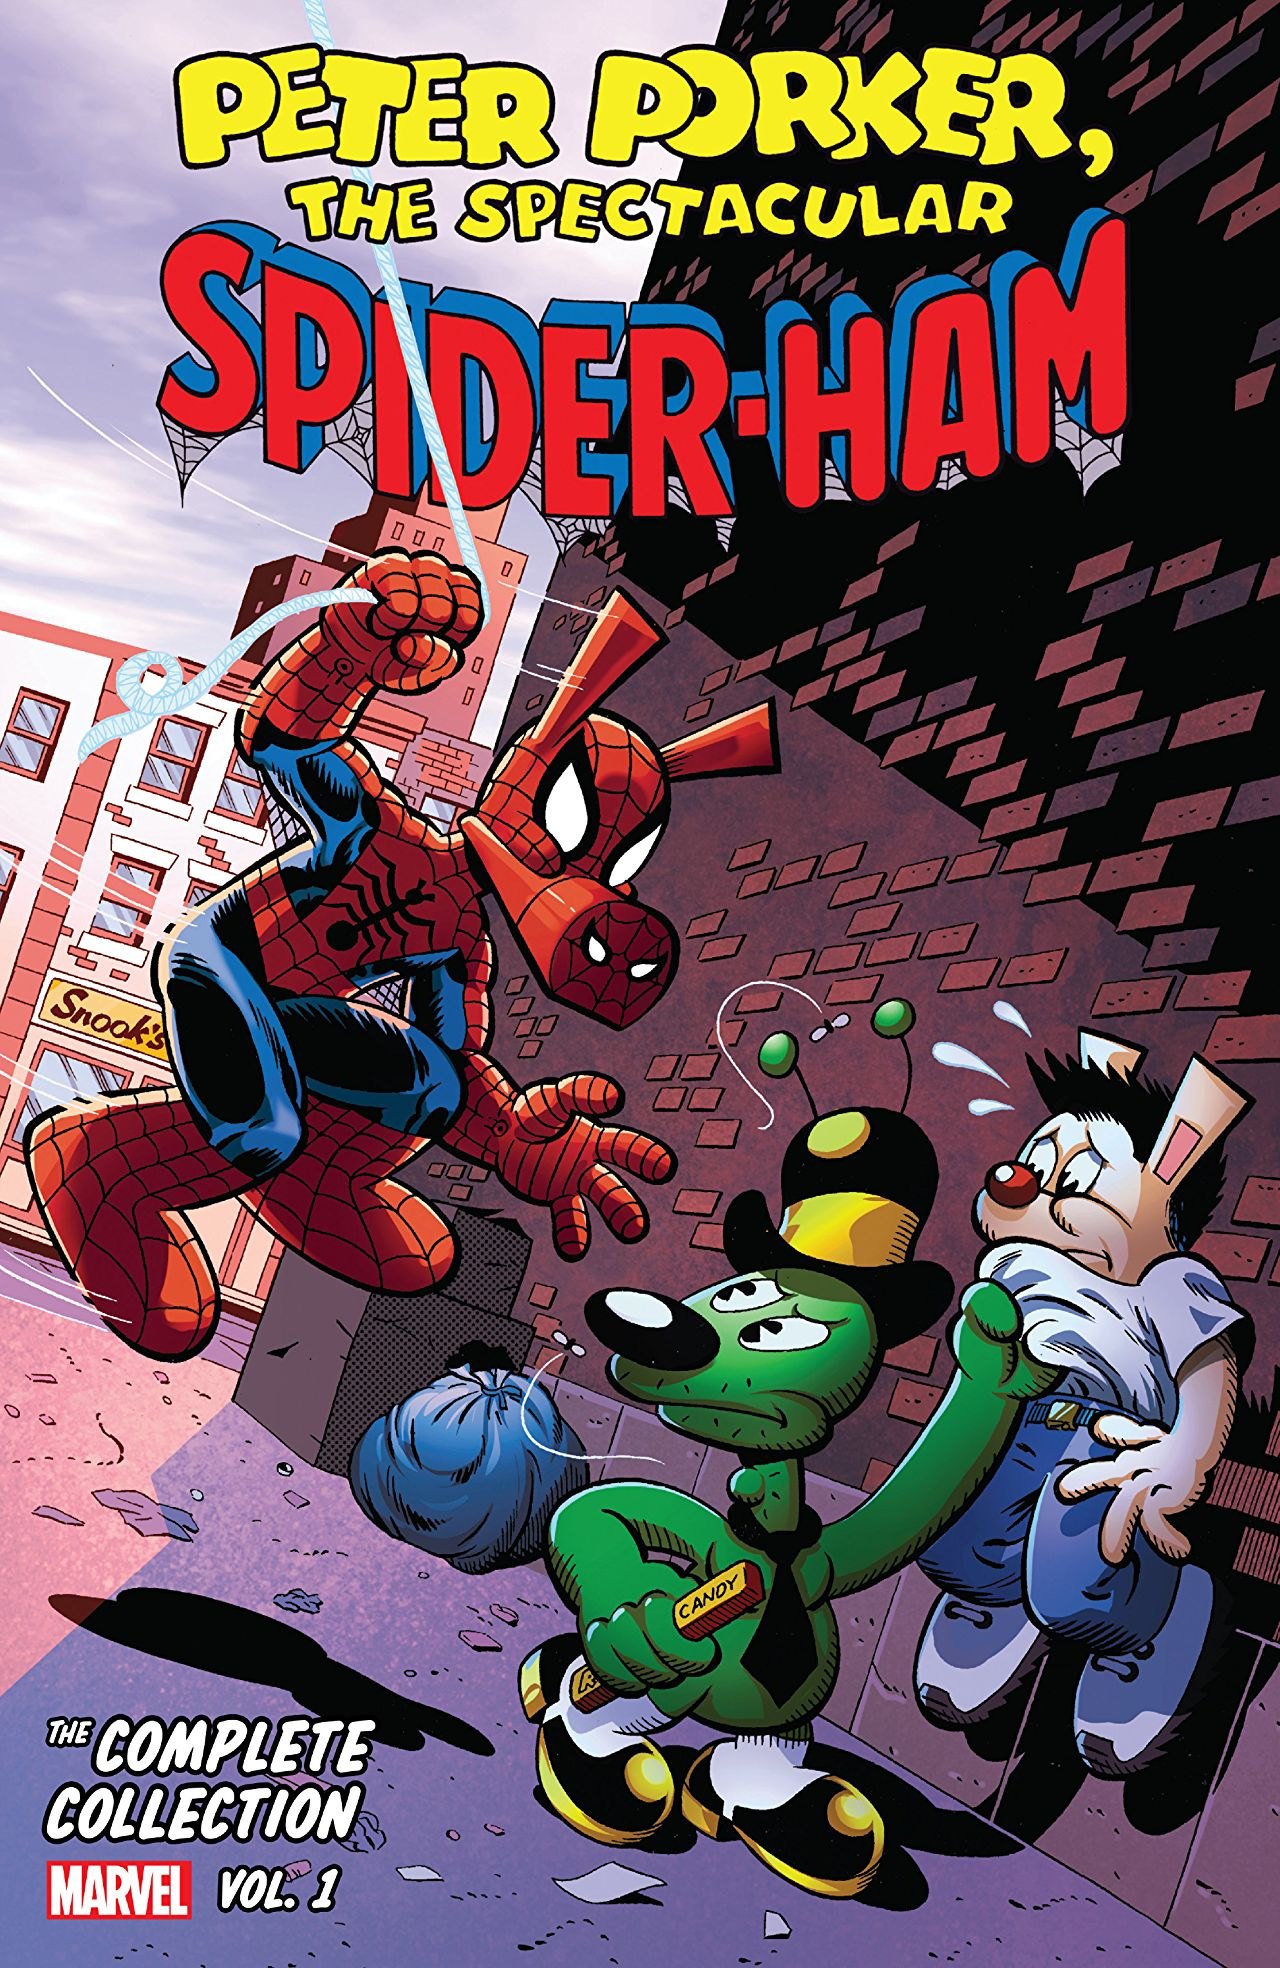 'Peter Porker: The Spectacular Spider-Ham - The Complete Collection, Vol. 1' TPB Review